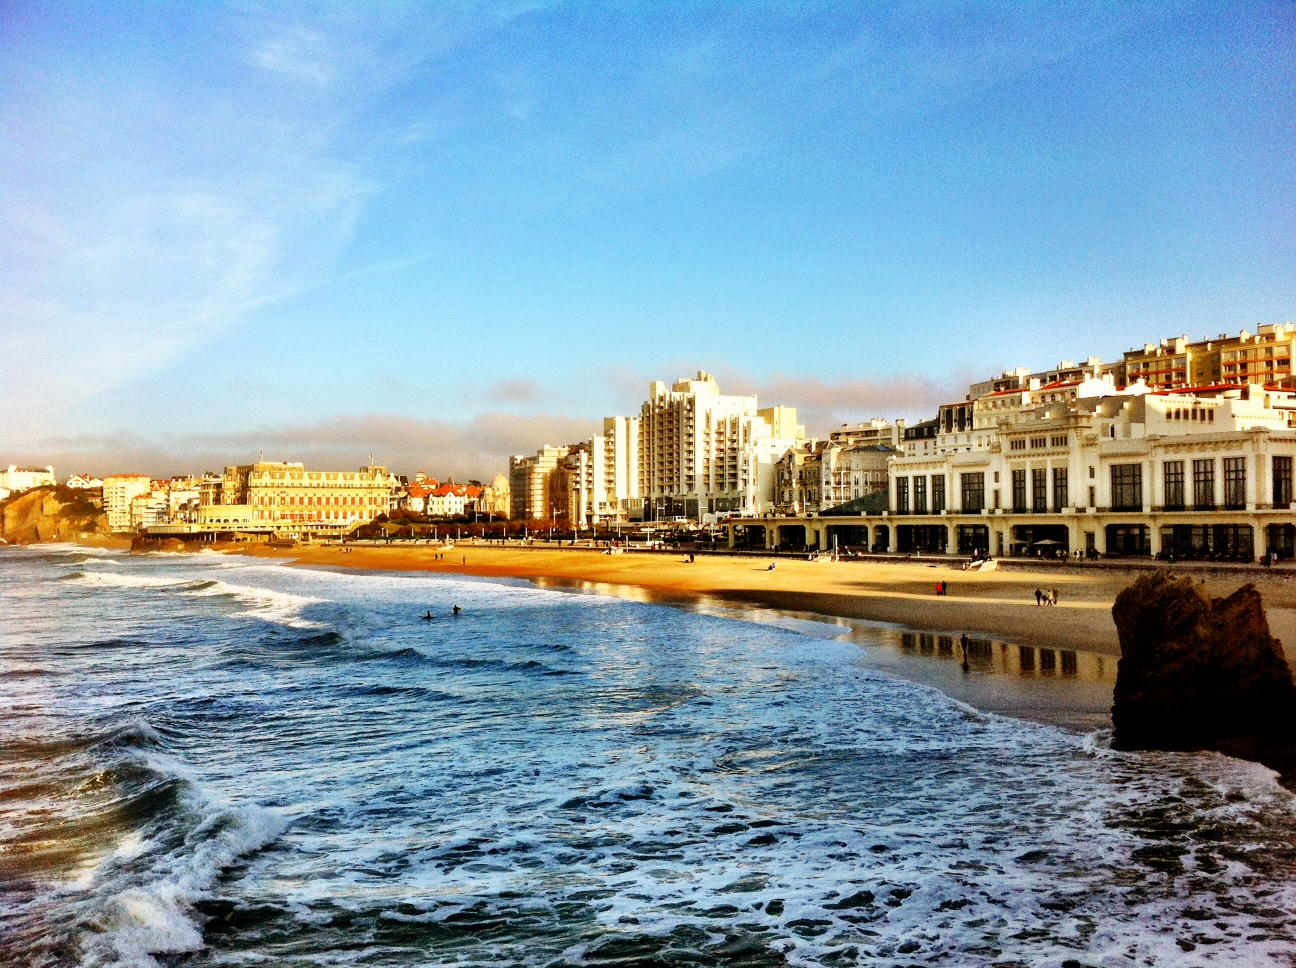 Biarritz Still Has That Sparkle